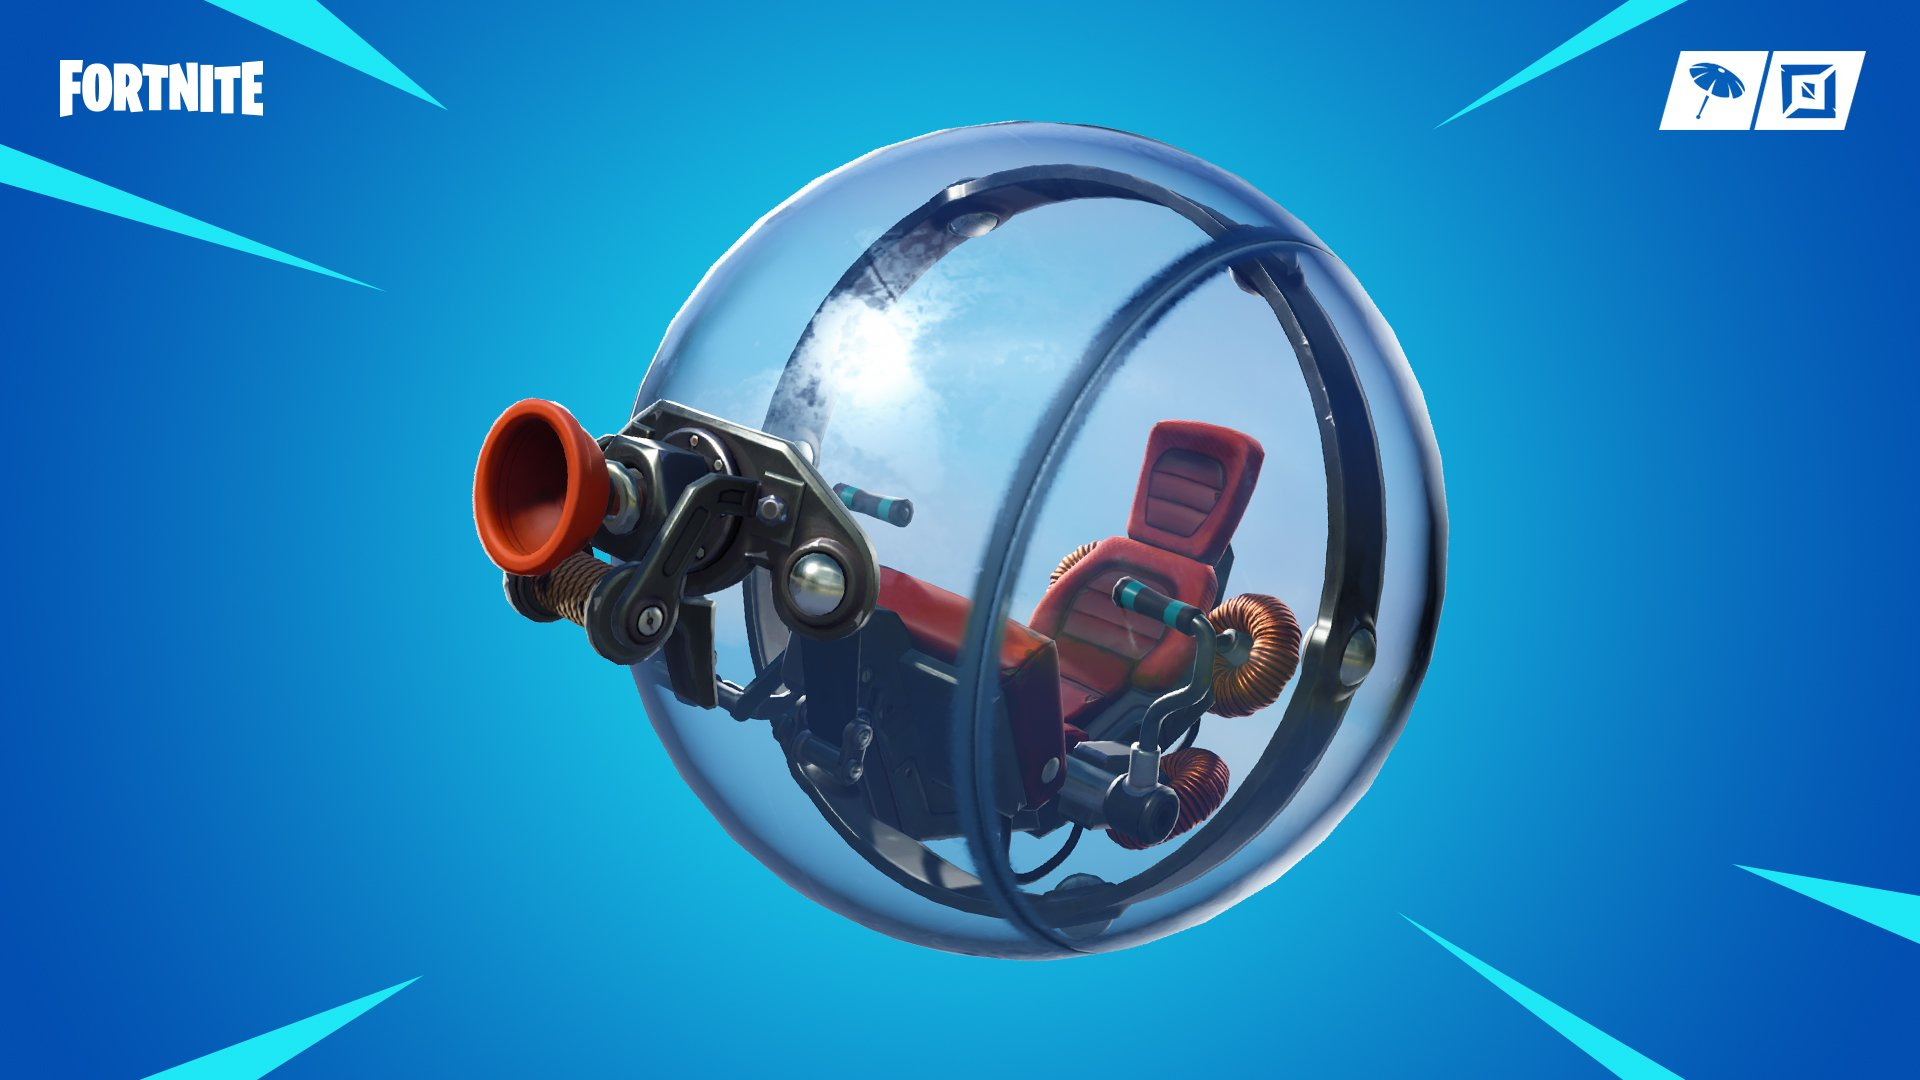 Fortnite patch notes v8.20